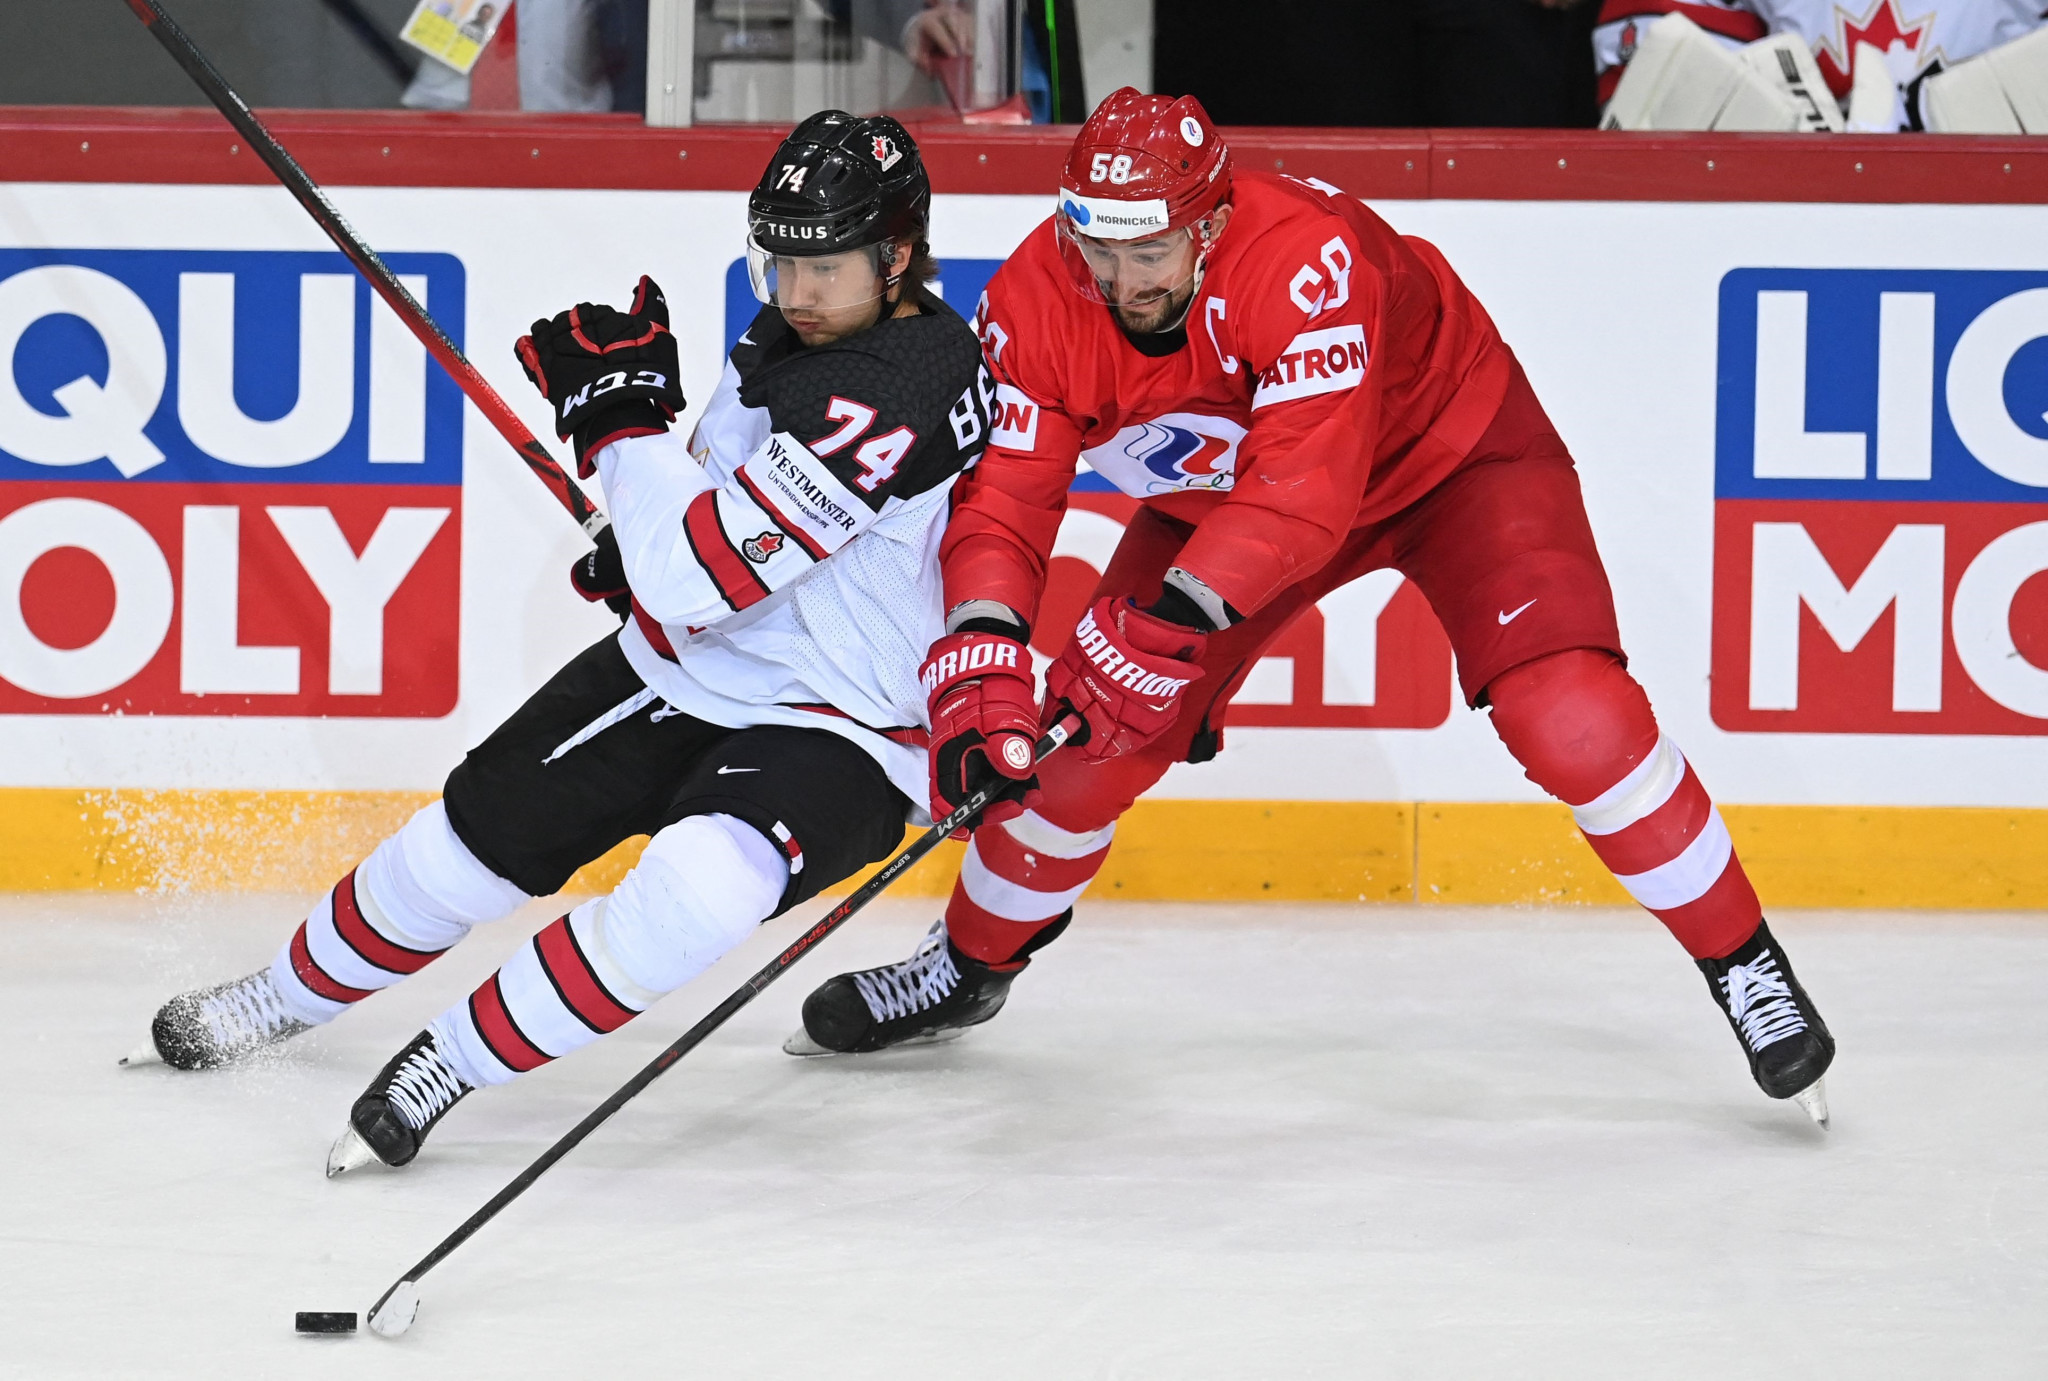 Saint Petersburg is preparing to stage the IIHF World Championship for the third time ©Getty Images